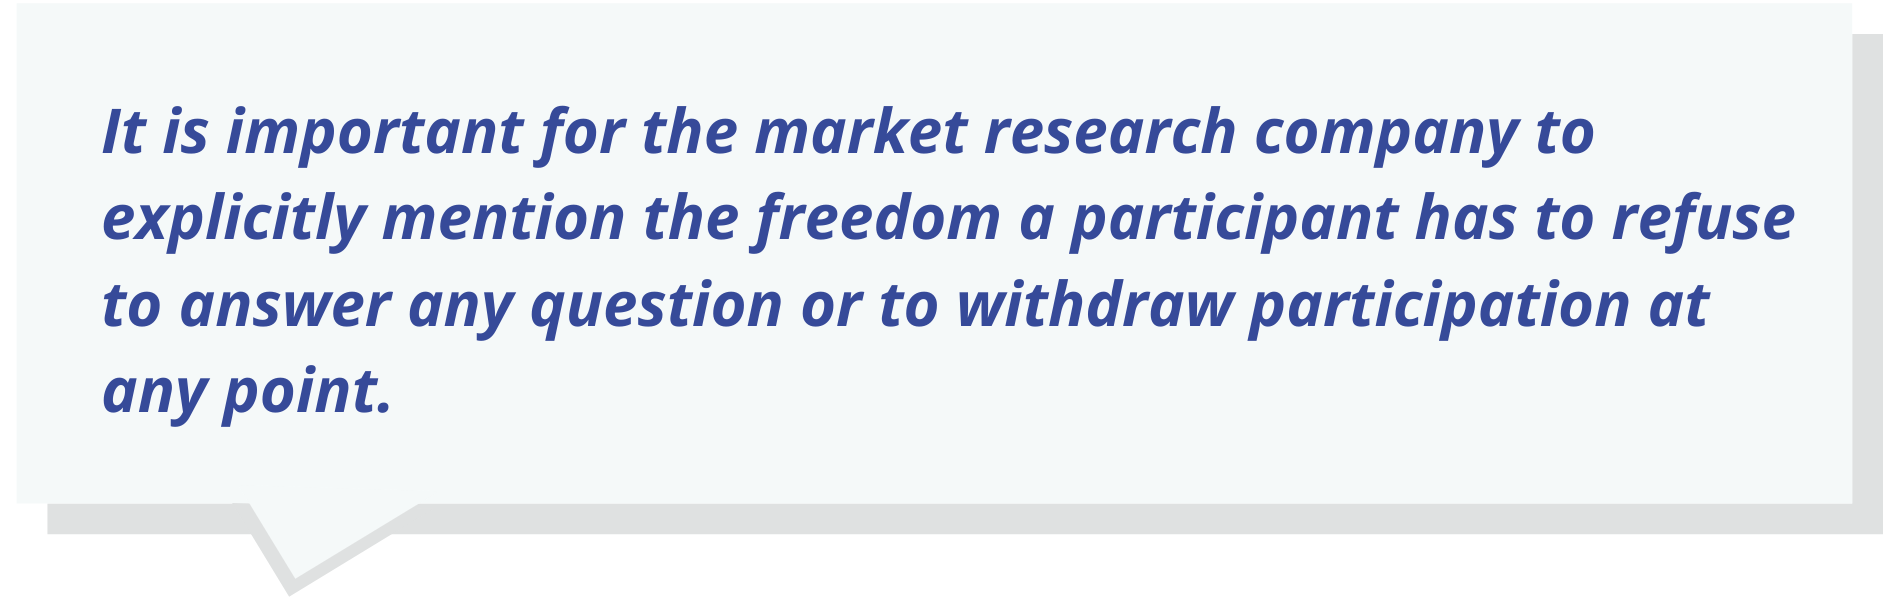 It is important for the market research company to explicitly mention the freedom a participant has to refuse to answer any question or to withdraw participation at any point.